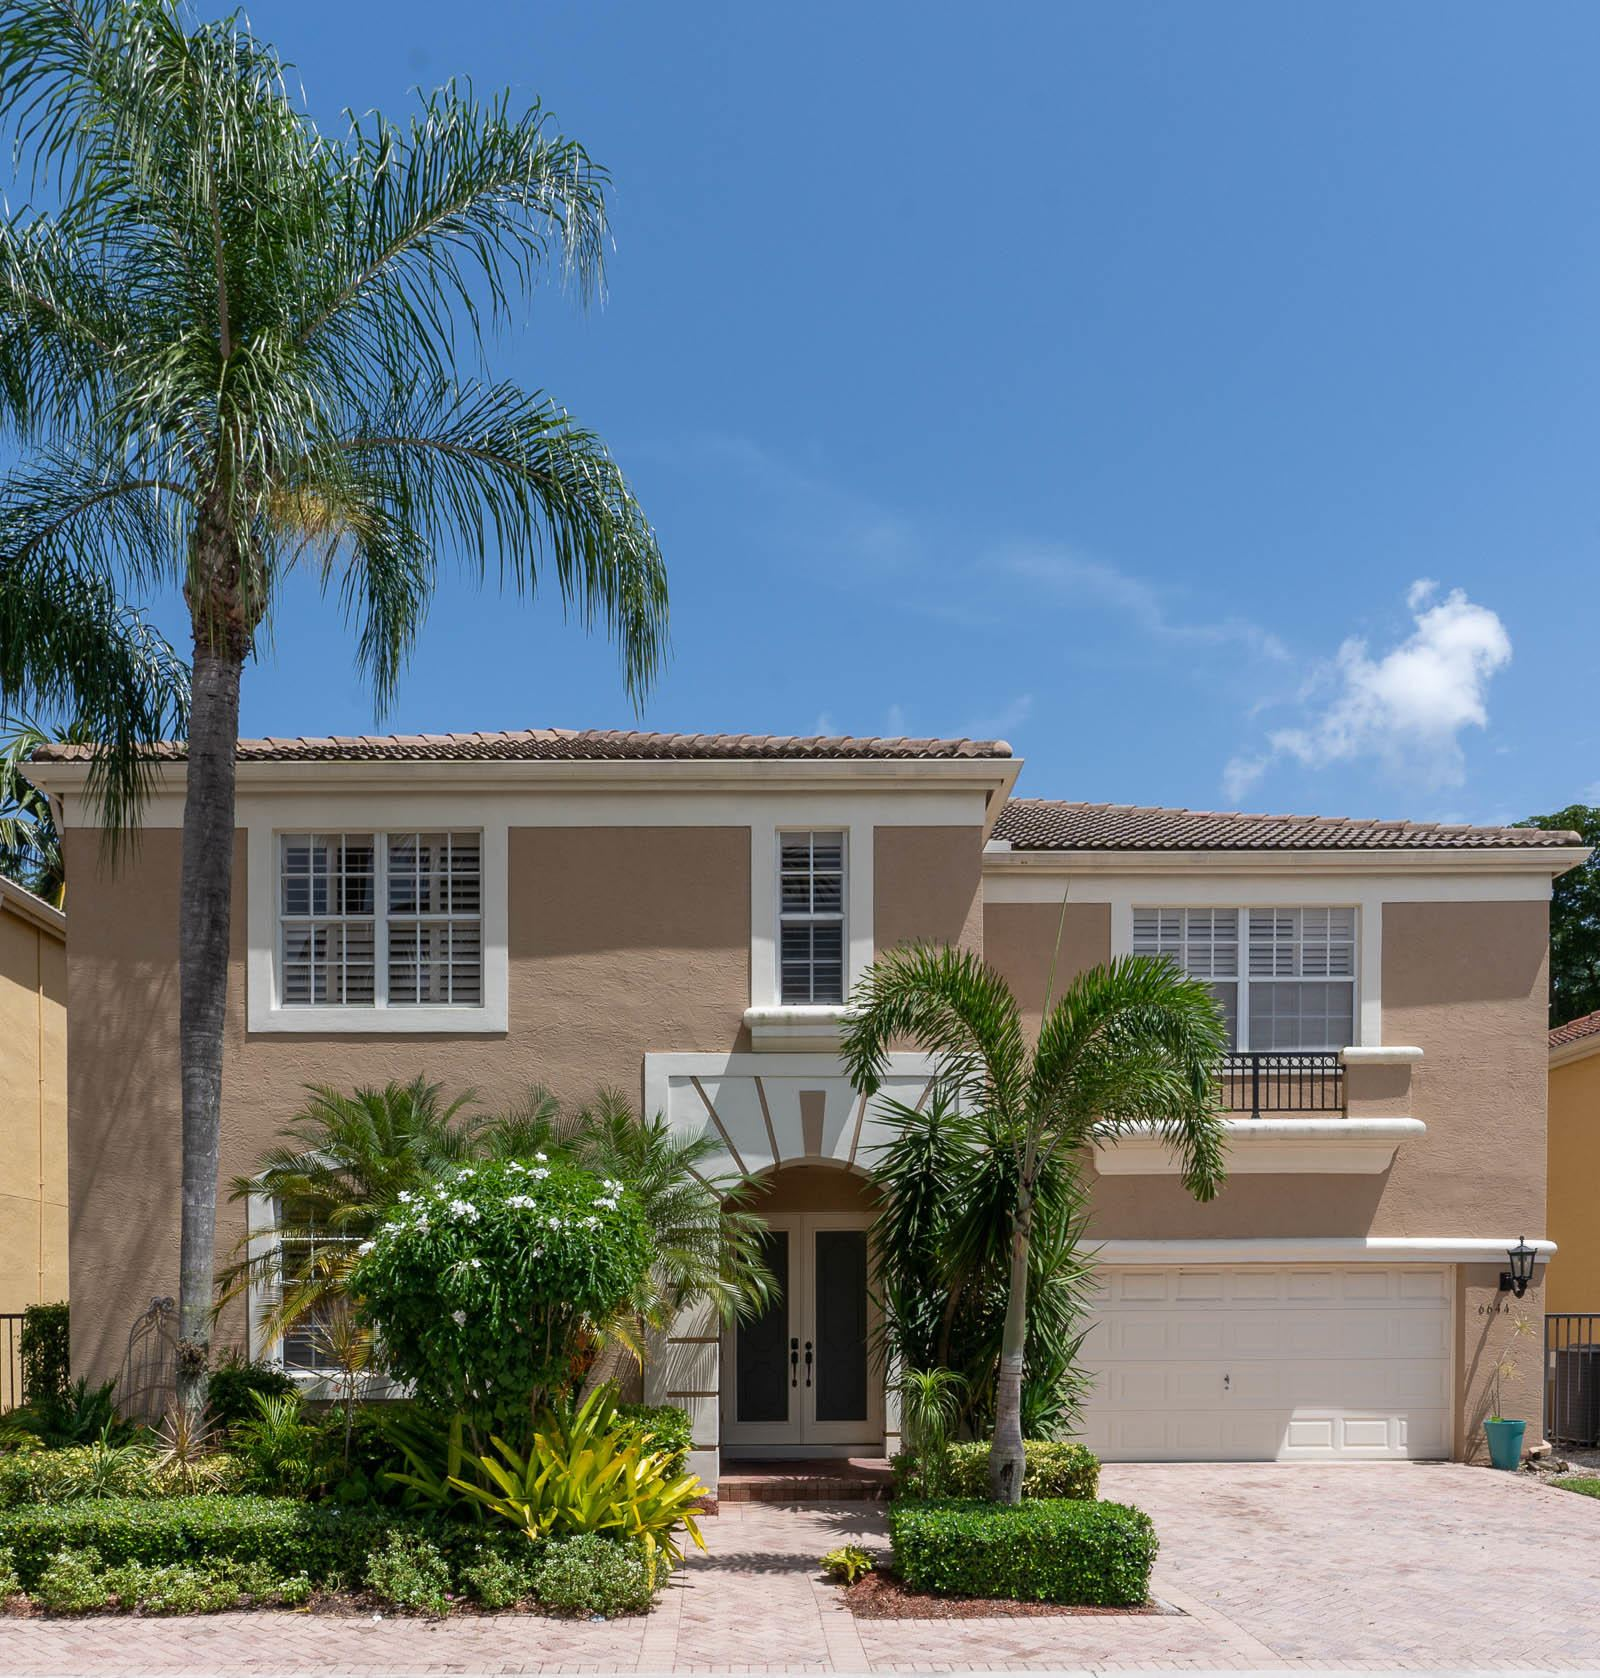 6644 NW 42nd Way, Boca Raton, FL 33496 - #: RX-10651393